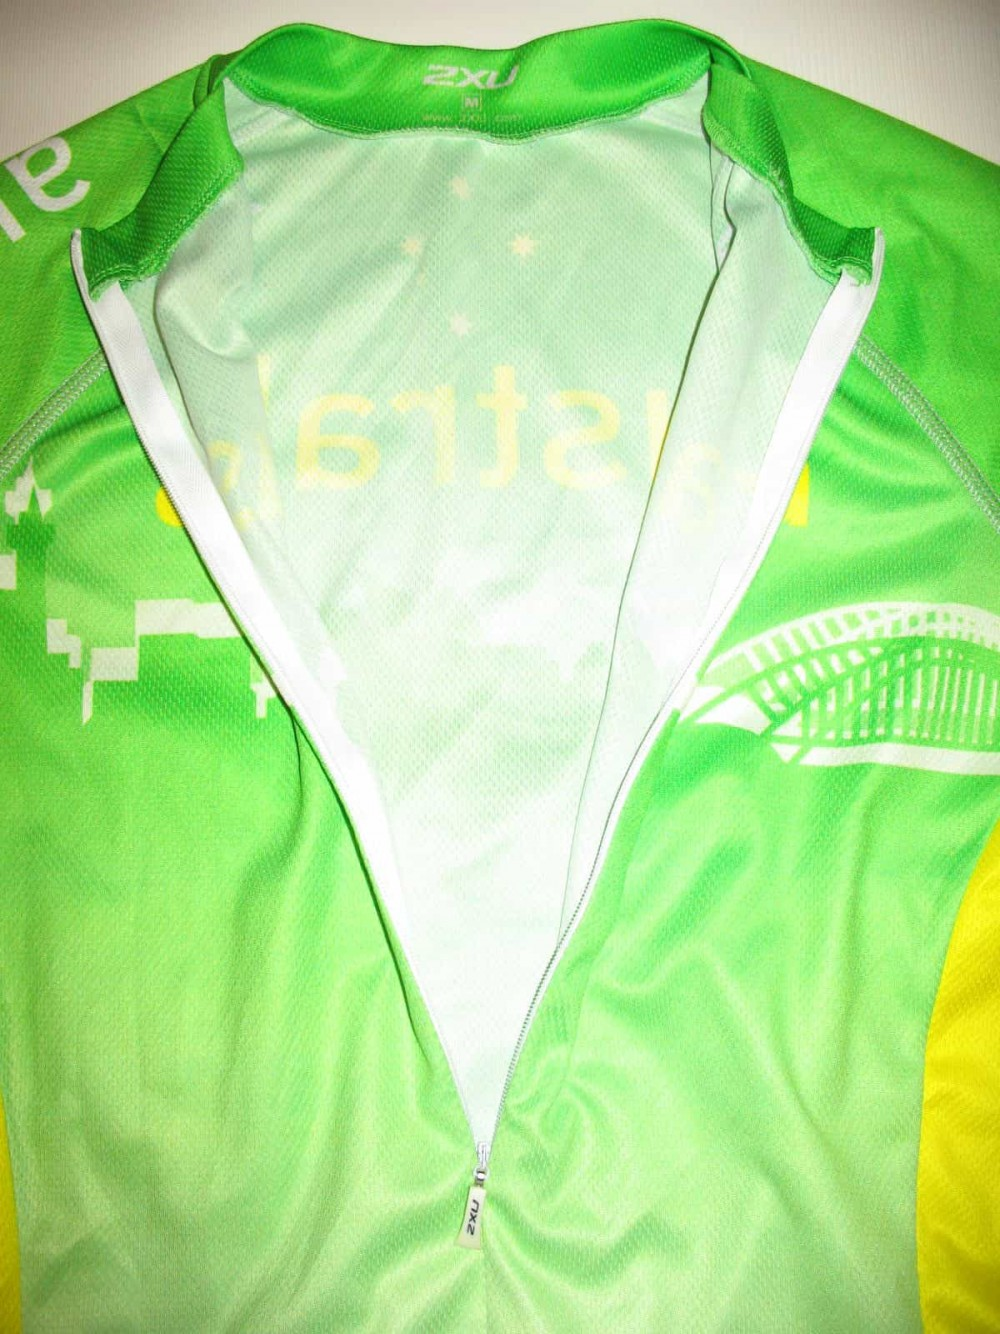 Веломайка 2XU australia cycling jersey lady (размер M) - 3